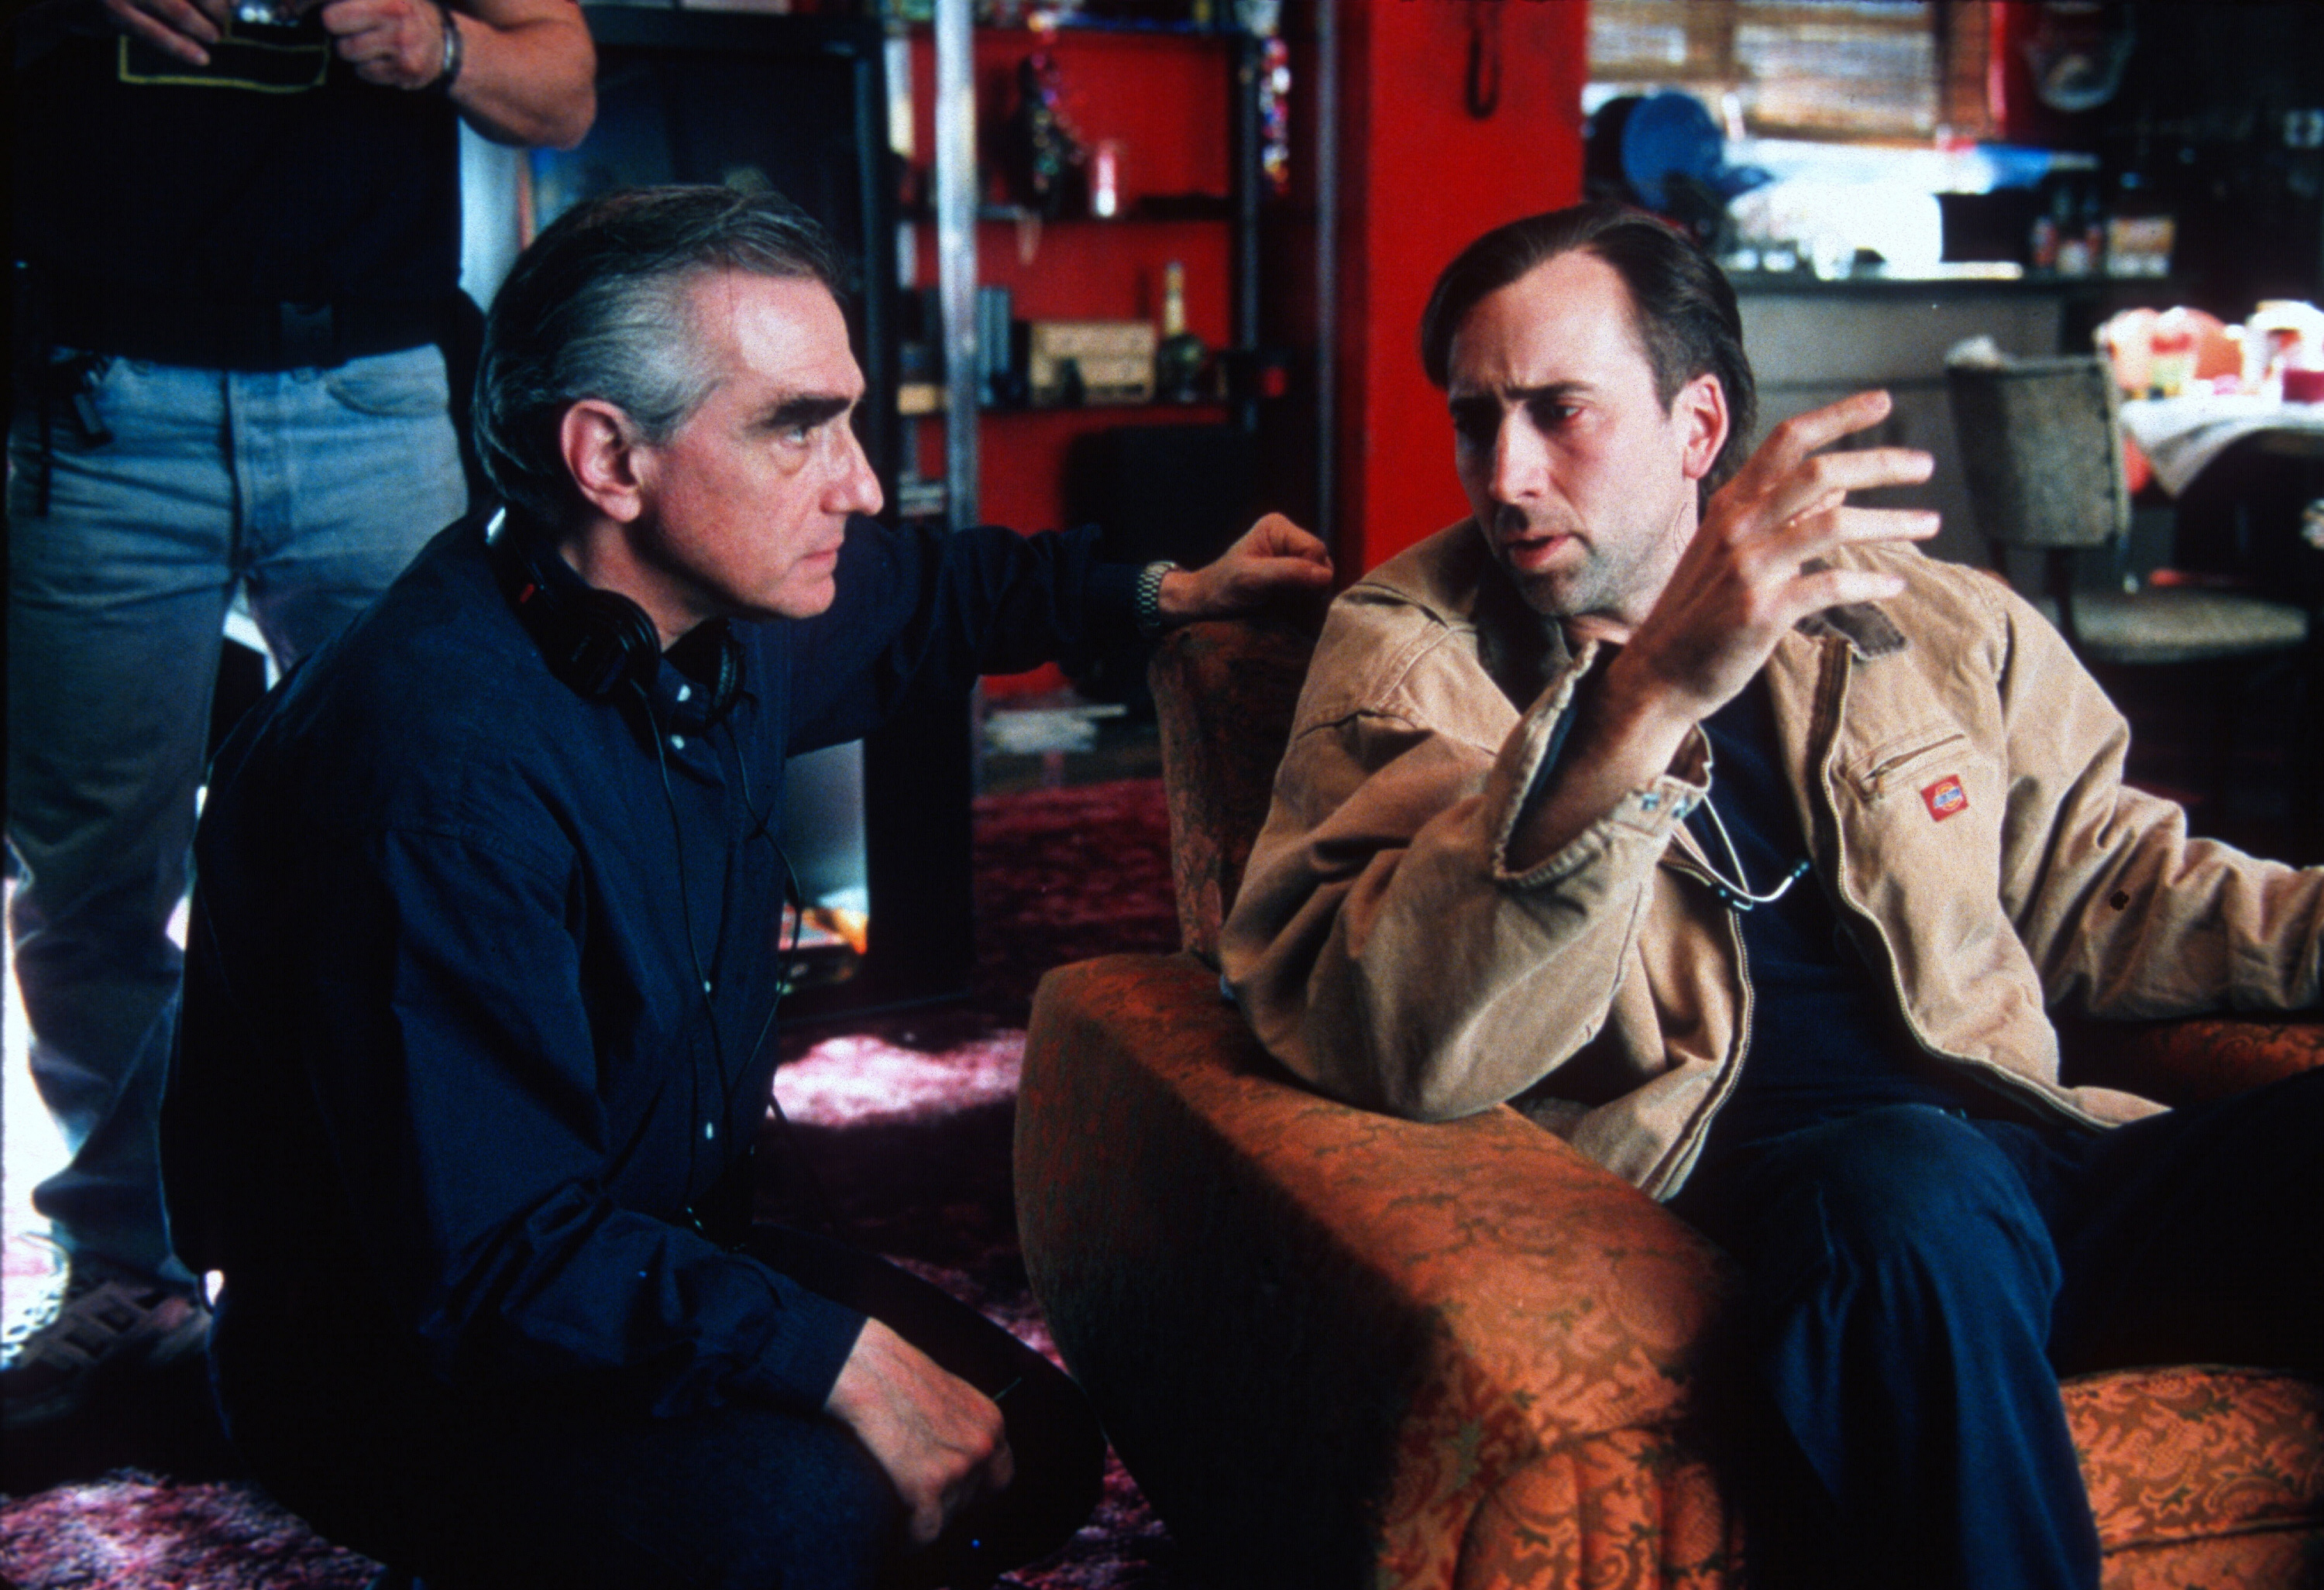 """Martin Scorsese (left) with Nicolas Cage on the set of """"Bringing Out the Dead"""" (1999). (Courtesy Paramount Pictures/Photofest)"""